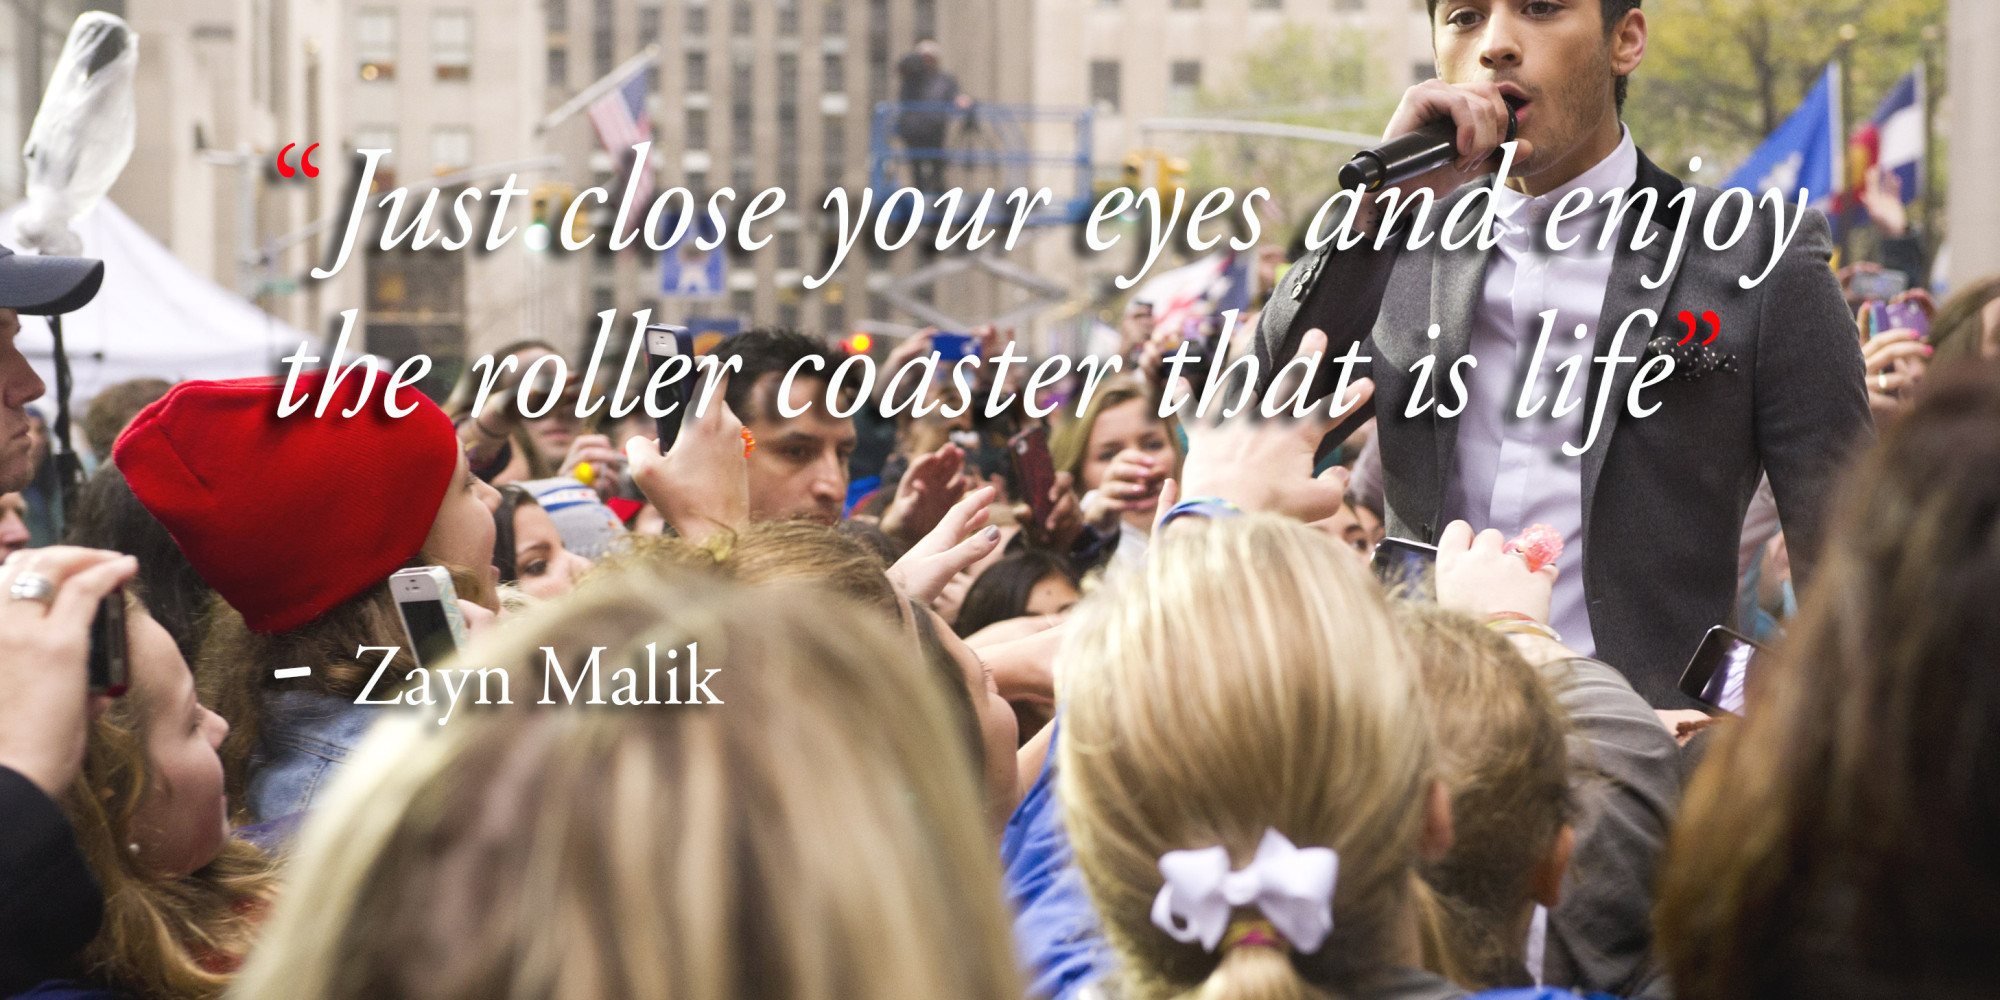 Image of: Wallpaper Inspirational Zayn Malik Quotes To Make Any One Direction Fan Smile Newslocker Inspirational Zayn Malik Quotes To Make Any One Direction Fan